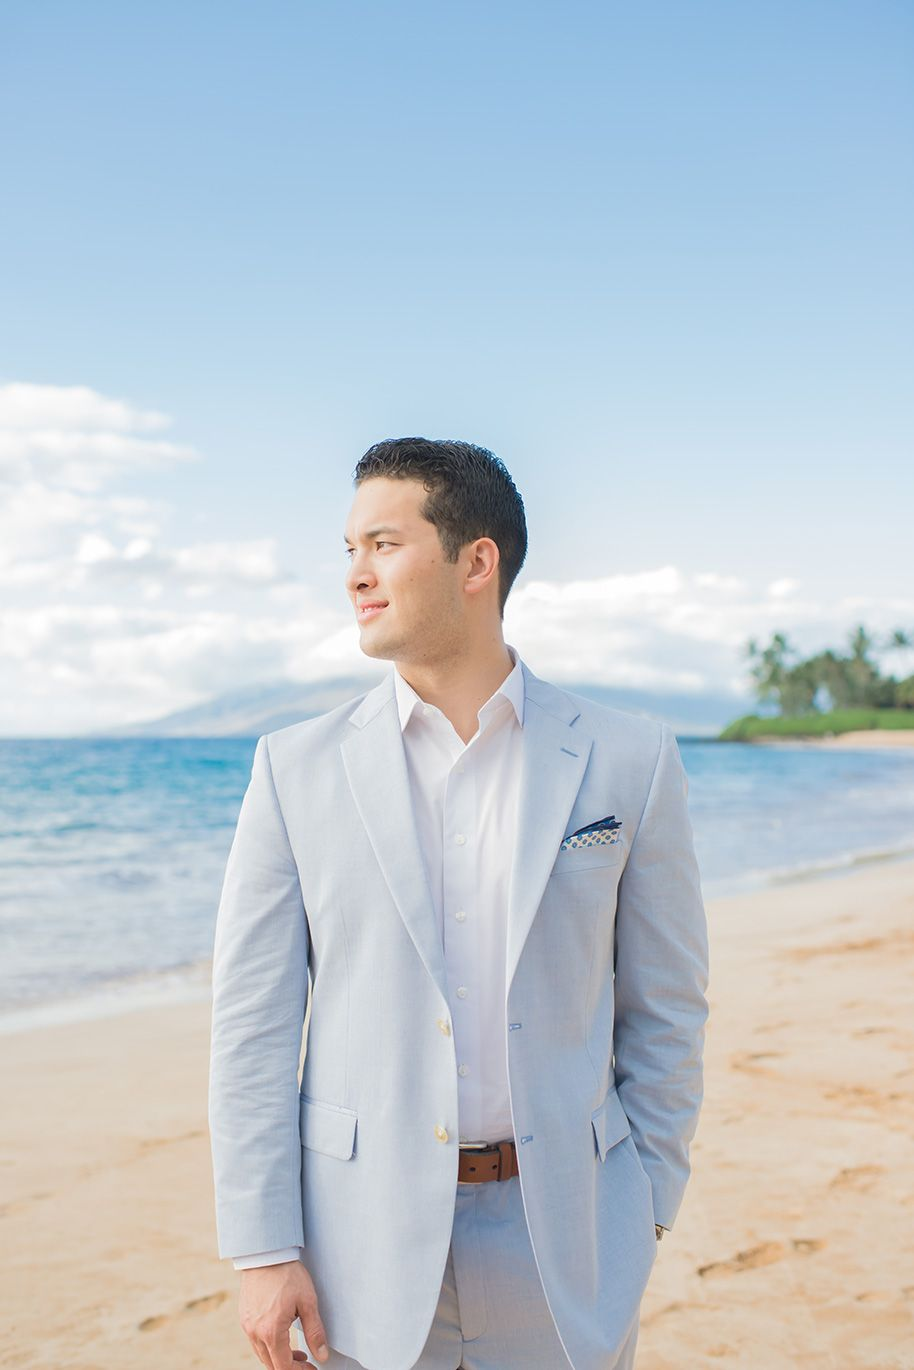 Groom Style at a Maui Beach Wedding -- A casual yet classy jacket ...